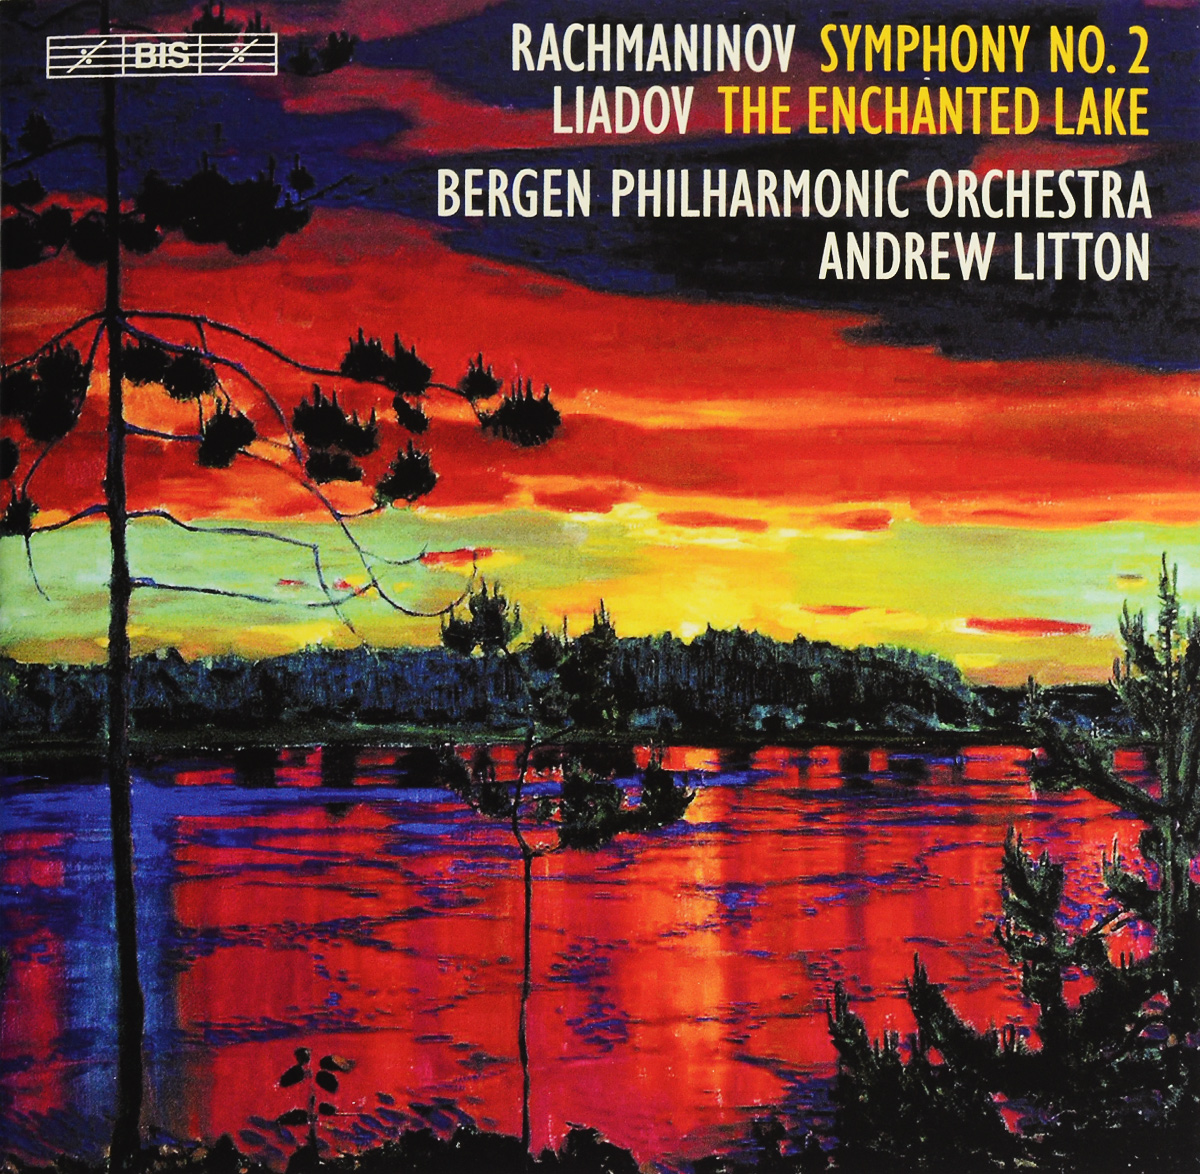 Bergen Philharmonic Orchestra,Эндрю Лайттон Bergen Philharmonic Orchestra, Andrew Litton. Rachmaninov, Liadov. Symphony No. 2. The Enchanted Lake (SACD) bergen philharmonic orchestra оле кристиан рууд grieg in autumn piano concerto symphony in c minor sacd